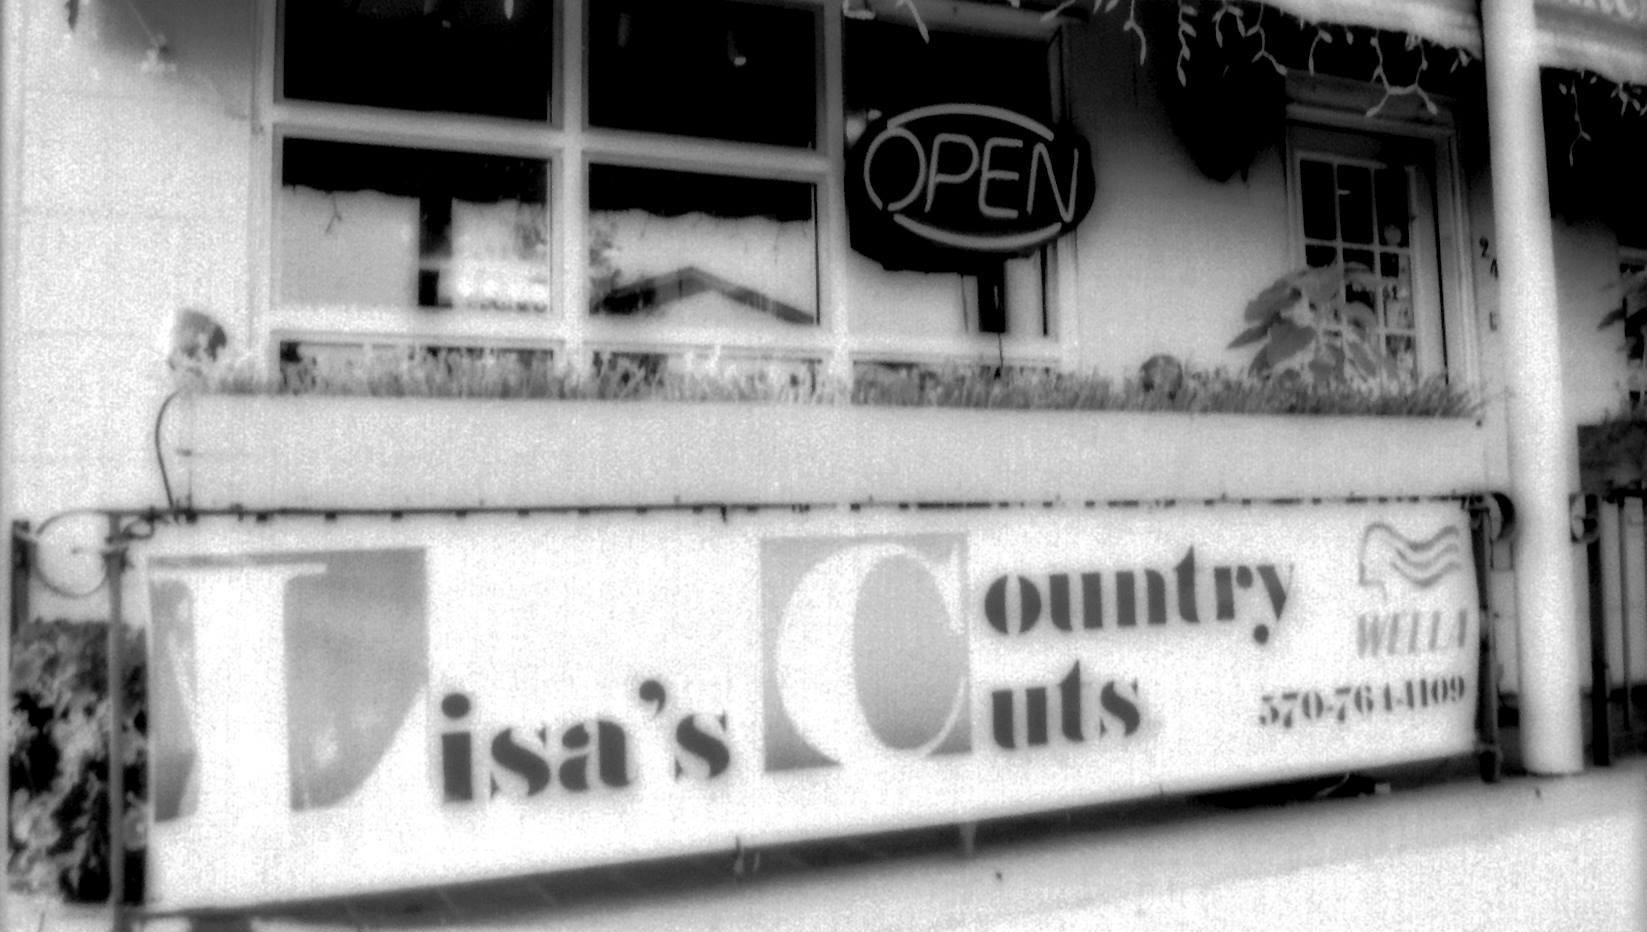 Shop front black and white